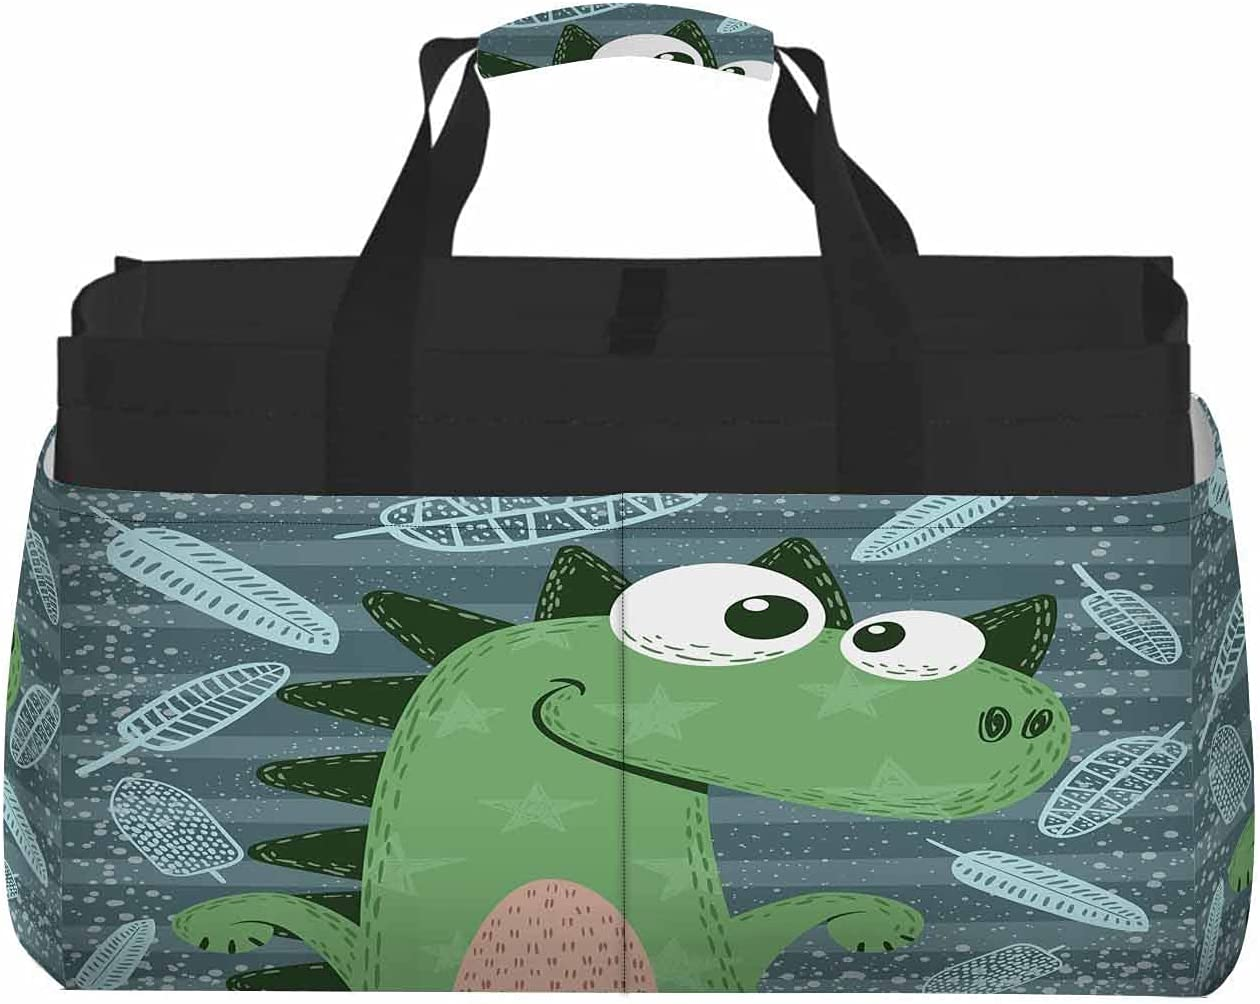 Max 44% OFF Nicokee Houston Mall Large Capacity Portable Storage Bag Cute Din Crazy Funny